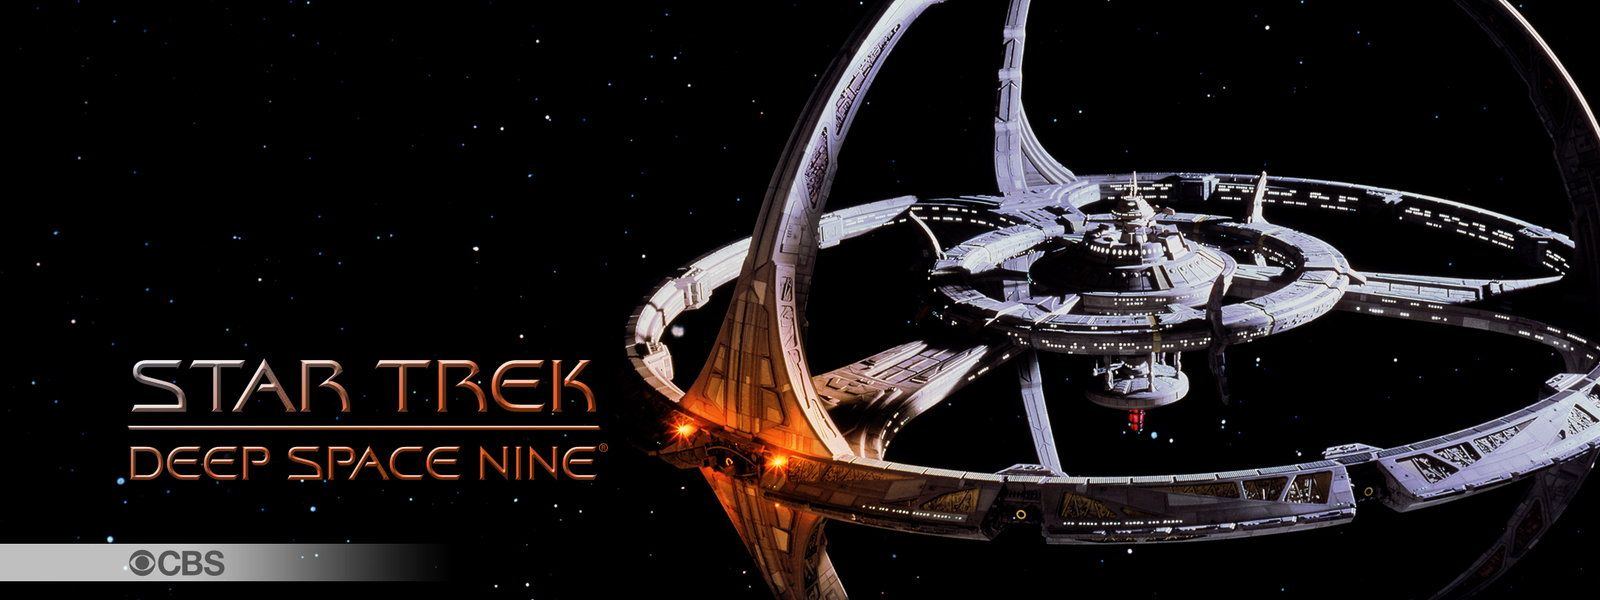 After finish watching all the star trek tng next choice